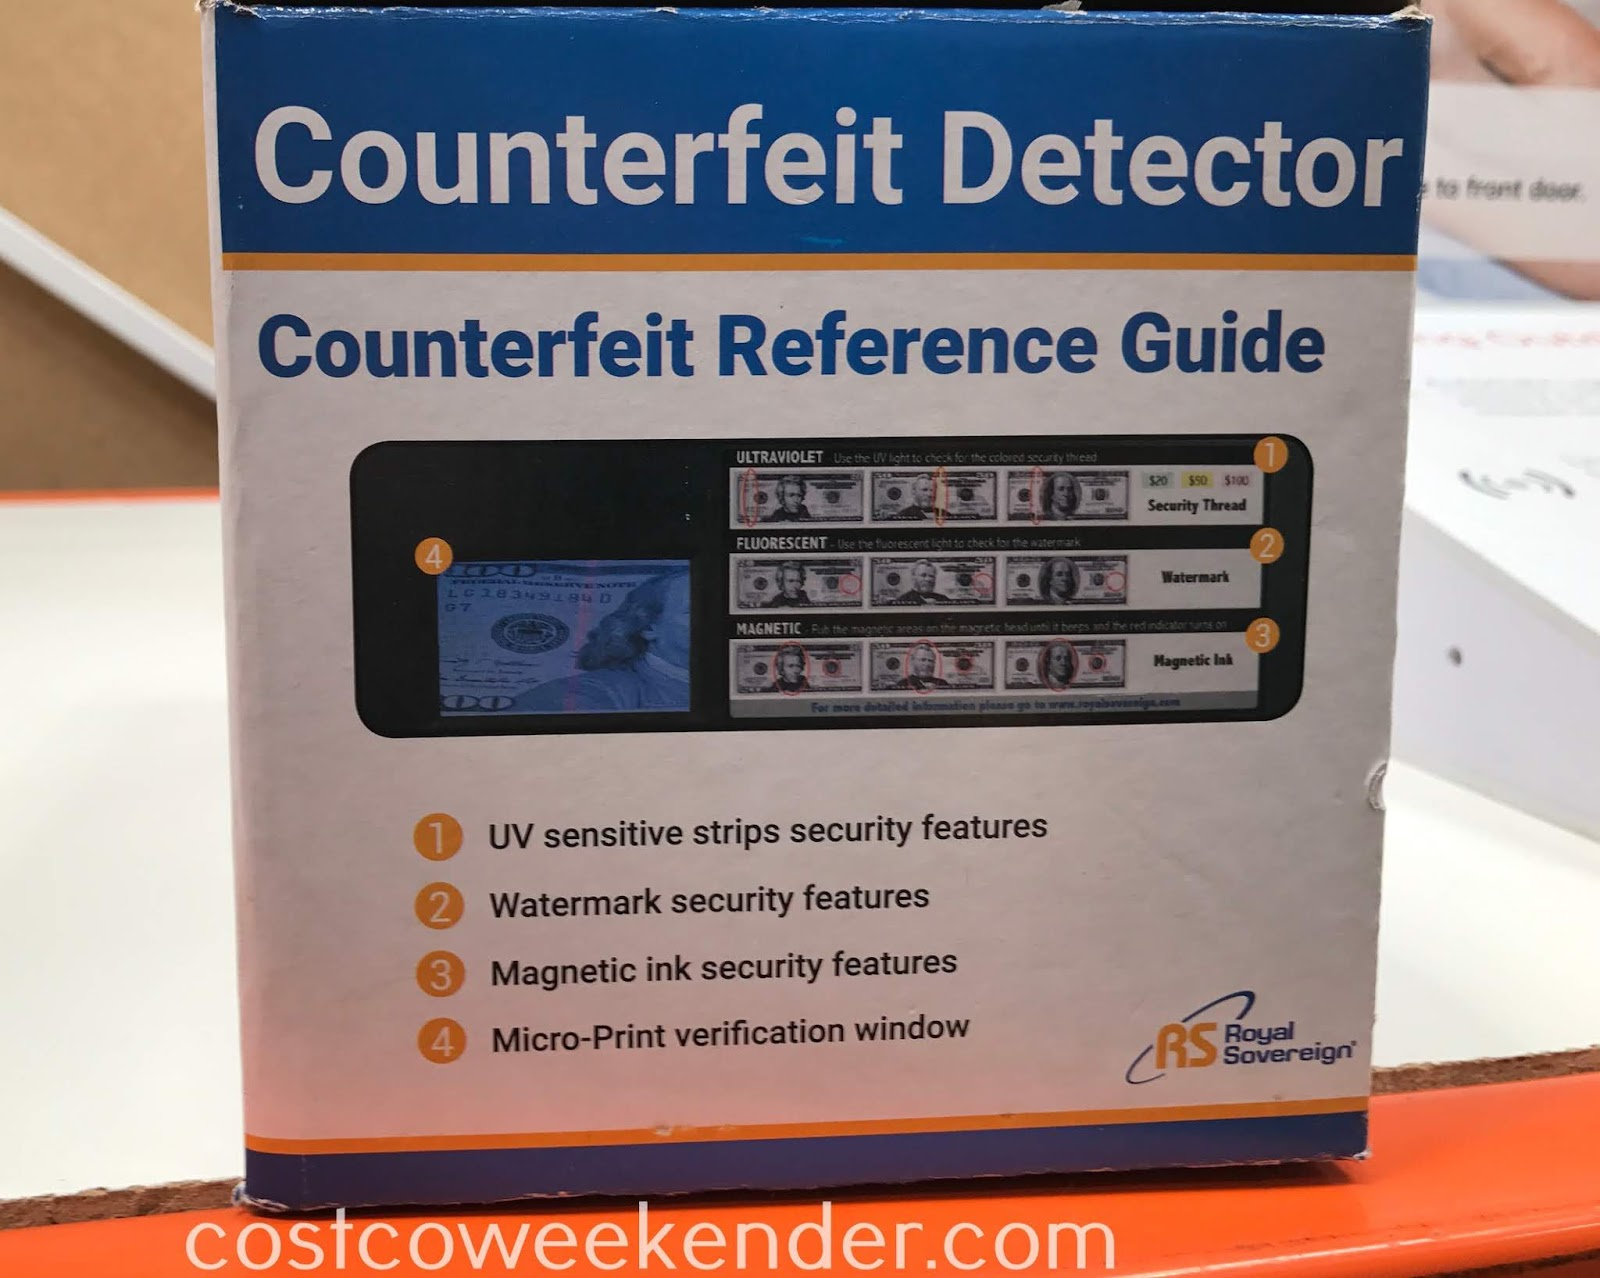 Royal Sovereign Counterfeit Detector can even verify identification too